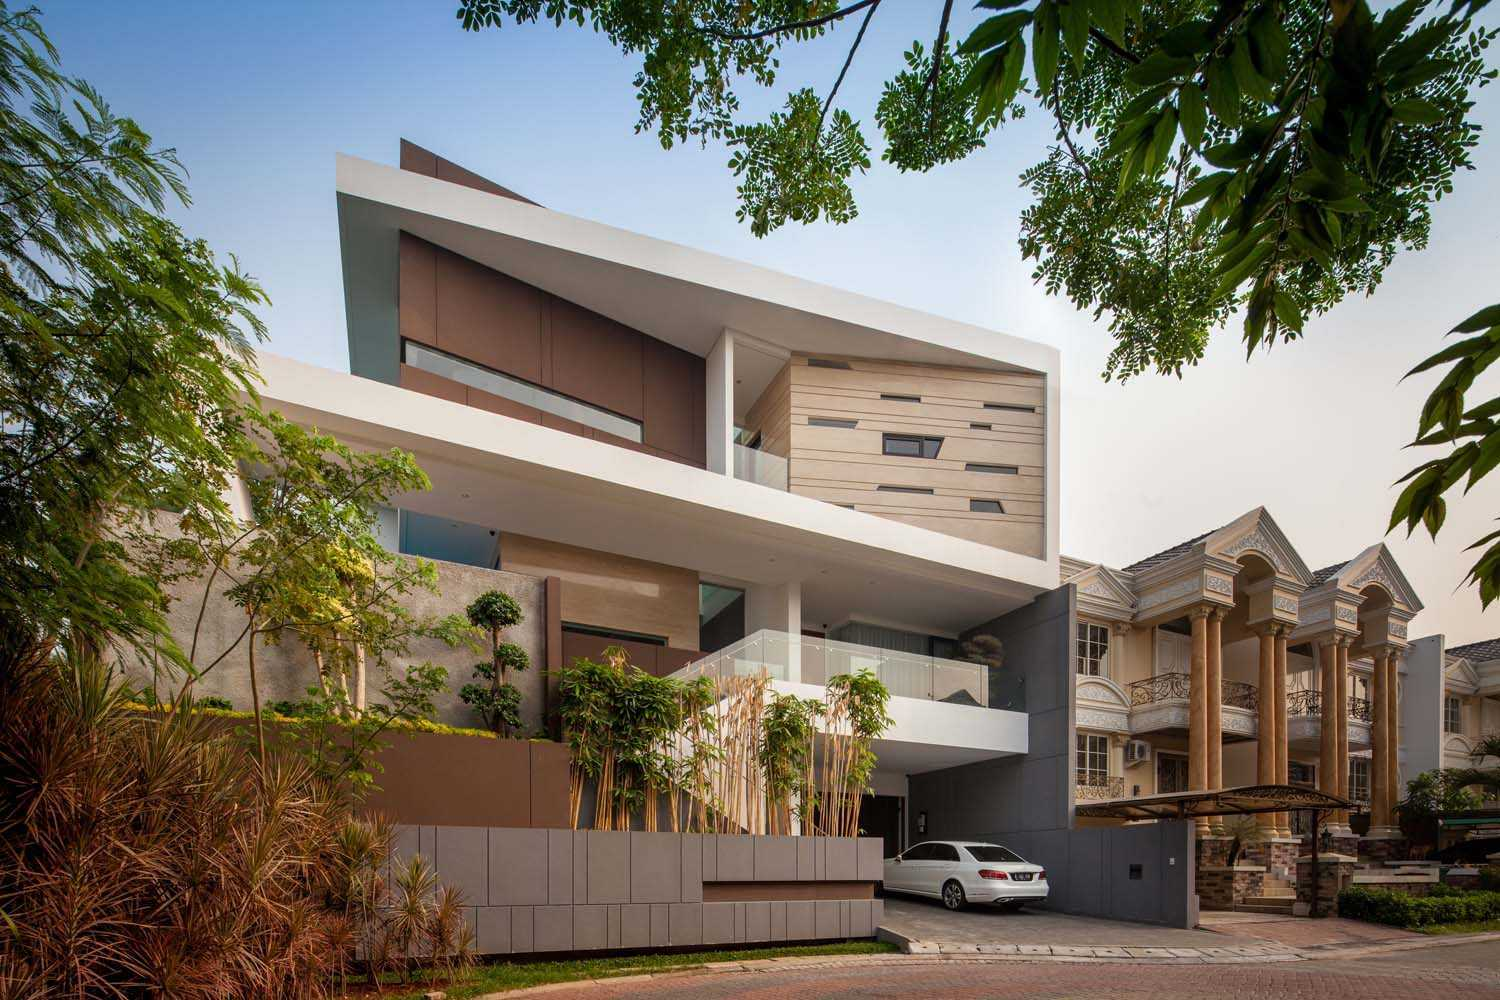 Dp+Hs Architects F+W House Jakarta, Indonesia Jakarta, Indonesia Facade Modern  8527